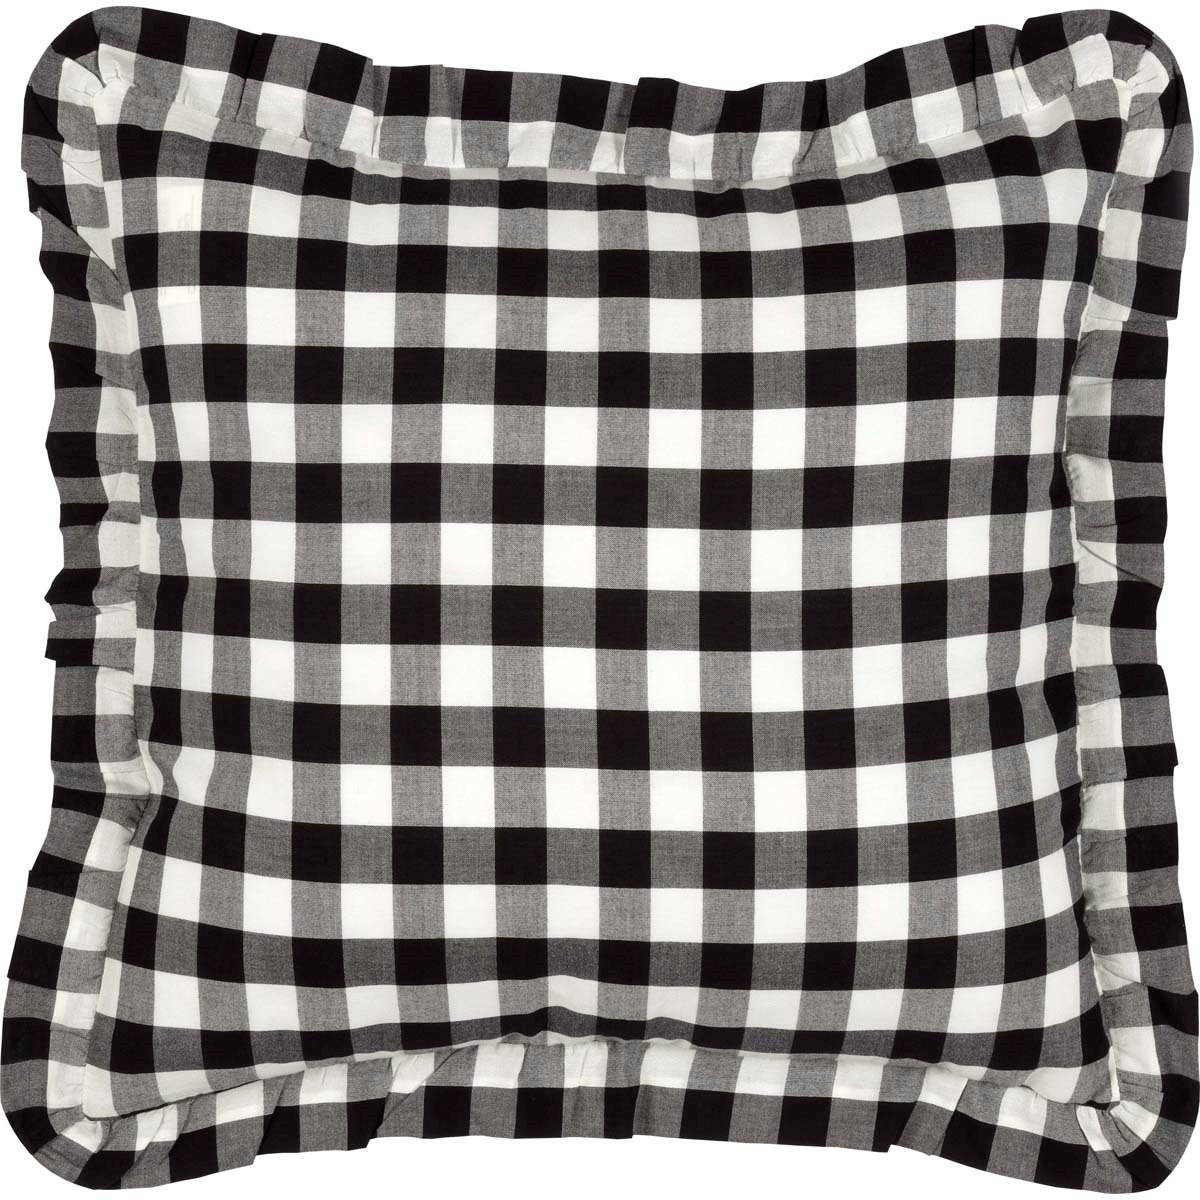 Annie Buffalo Black Check Fabric Pillow 18x18